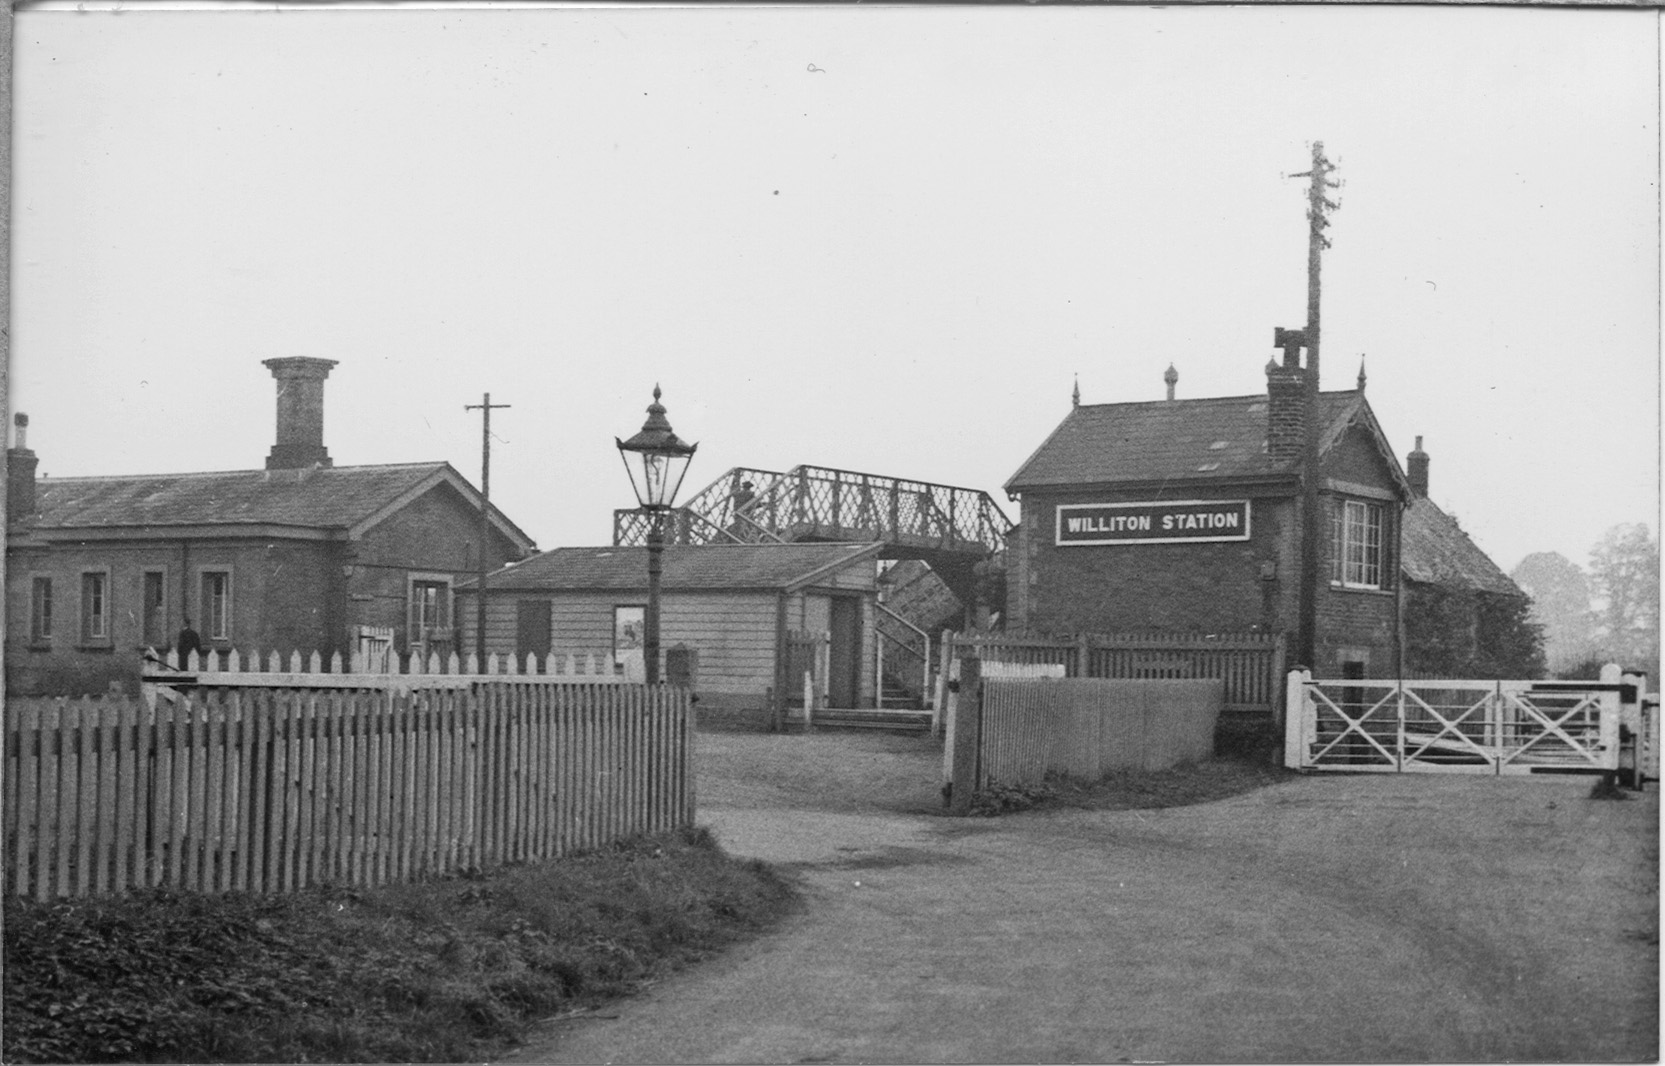 1947 - Williton Station. ©The John Alsop Collection